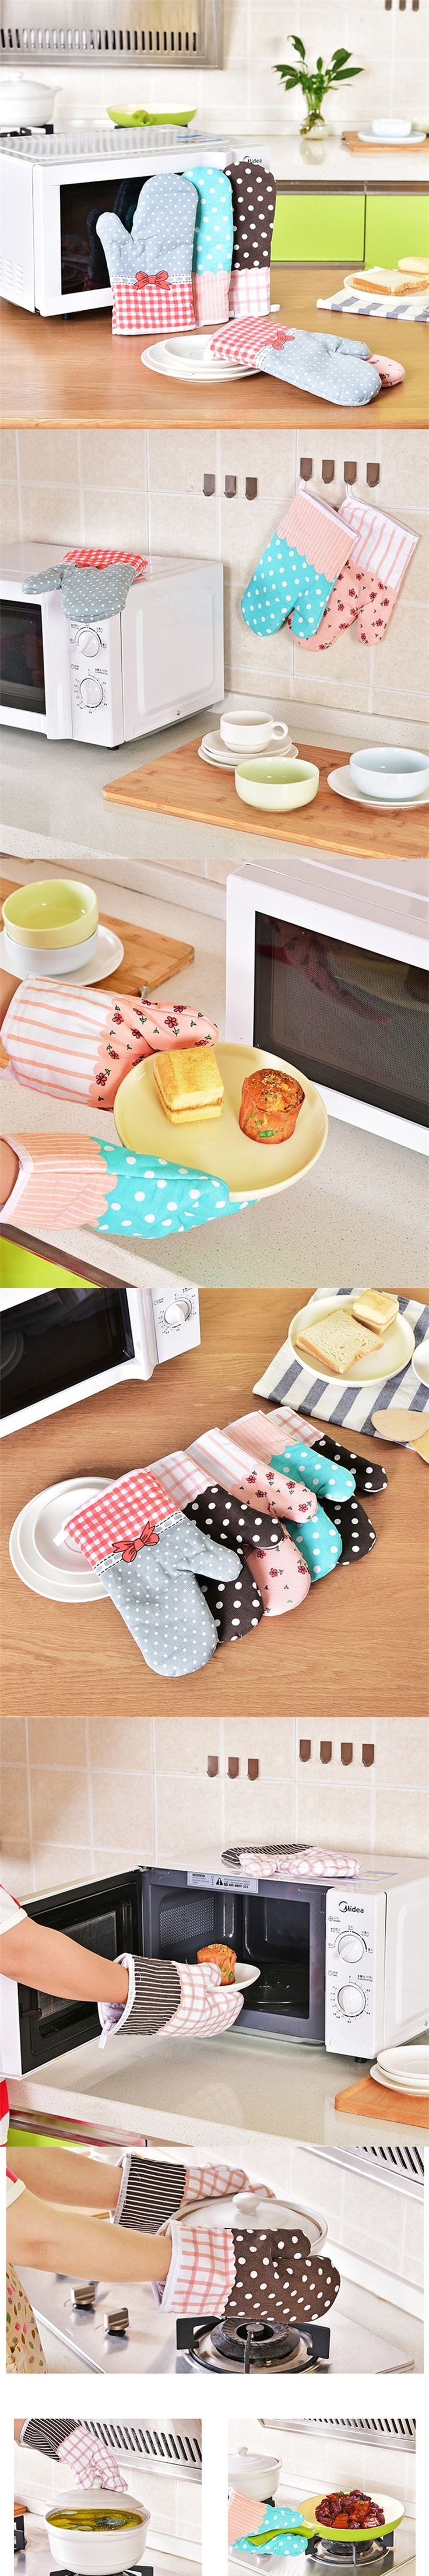 1PCS Cute Home Kitchen High Temperature Heat Resistant Cooking Accessory Microwave Oven Insulated Non-slip Thick Household Glove